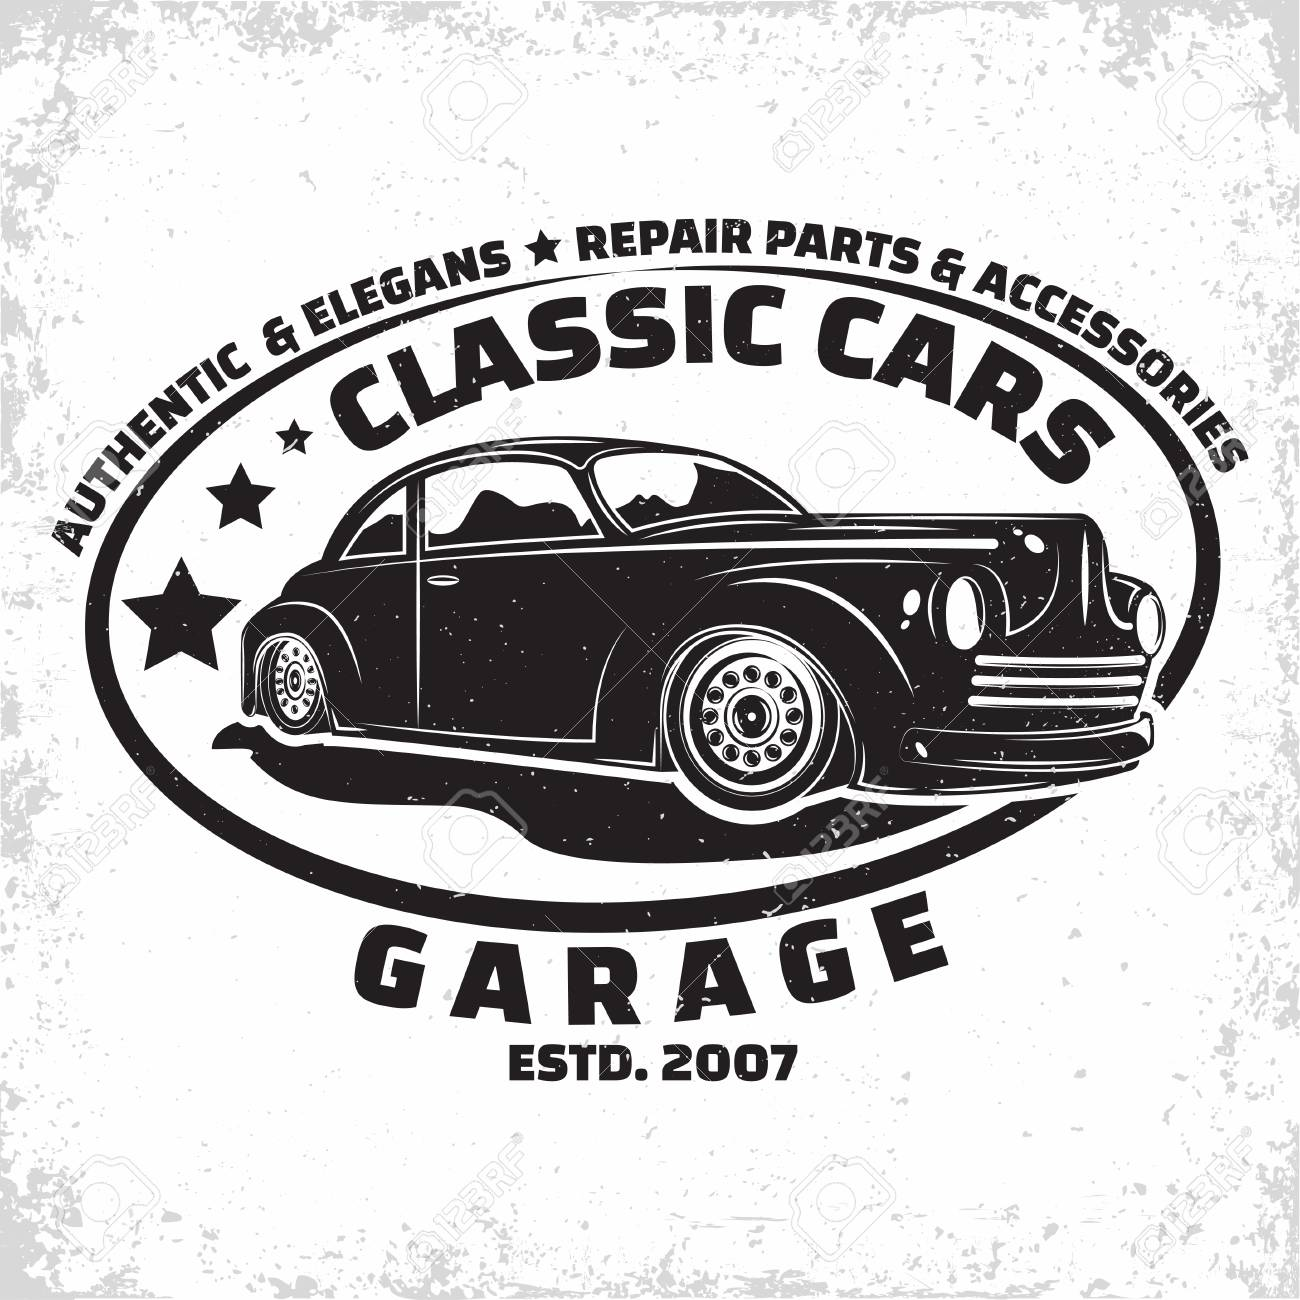 Hot Rod Garage Logo Design Emblem Of Muscle Car Repair And Service Royalty Free Cliparts Vectors And Stock Illustration Image 109580536